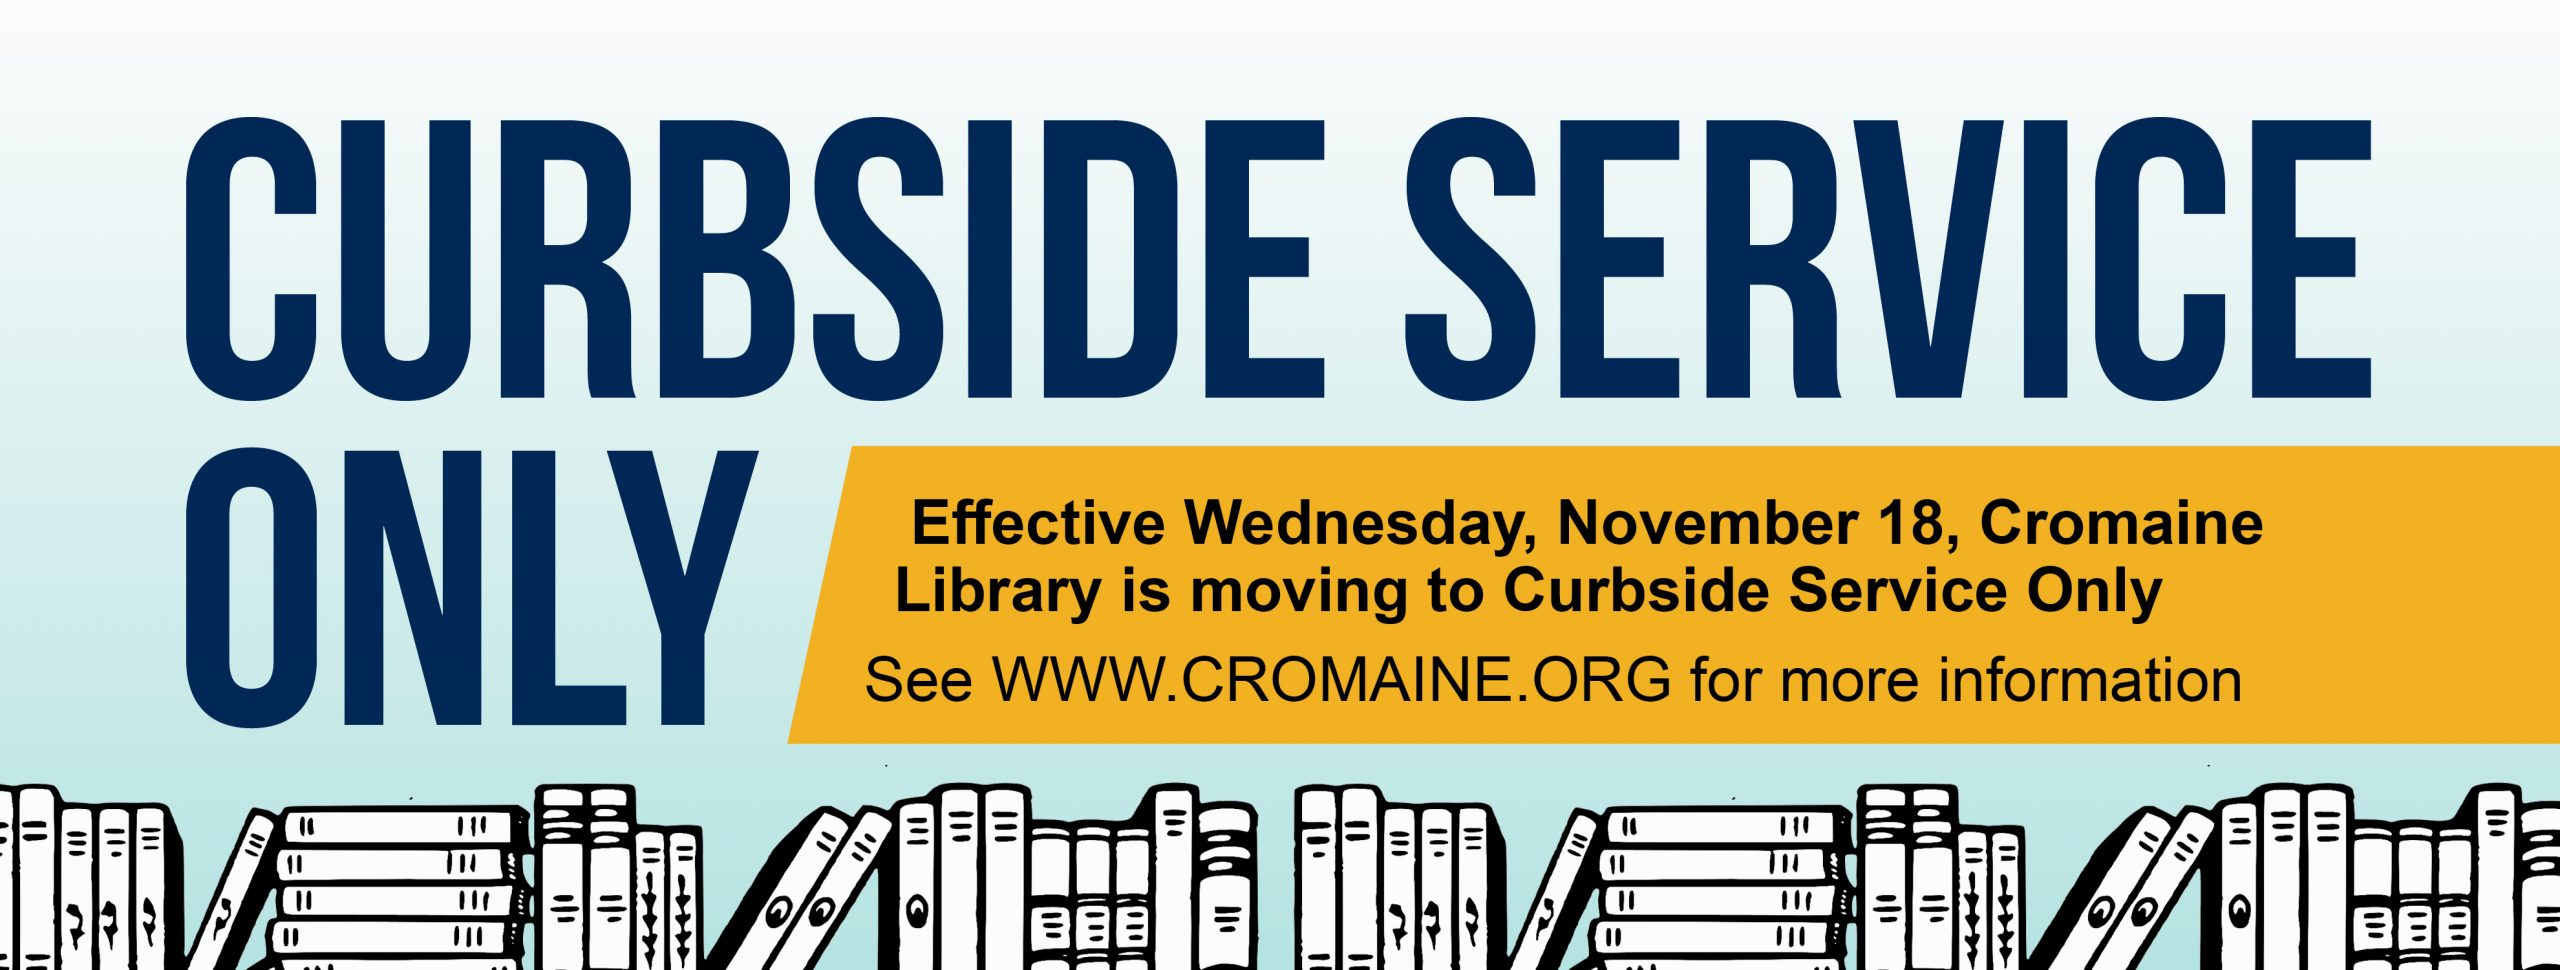 Cromaine Library Returns to Curbside Service Only